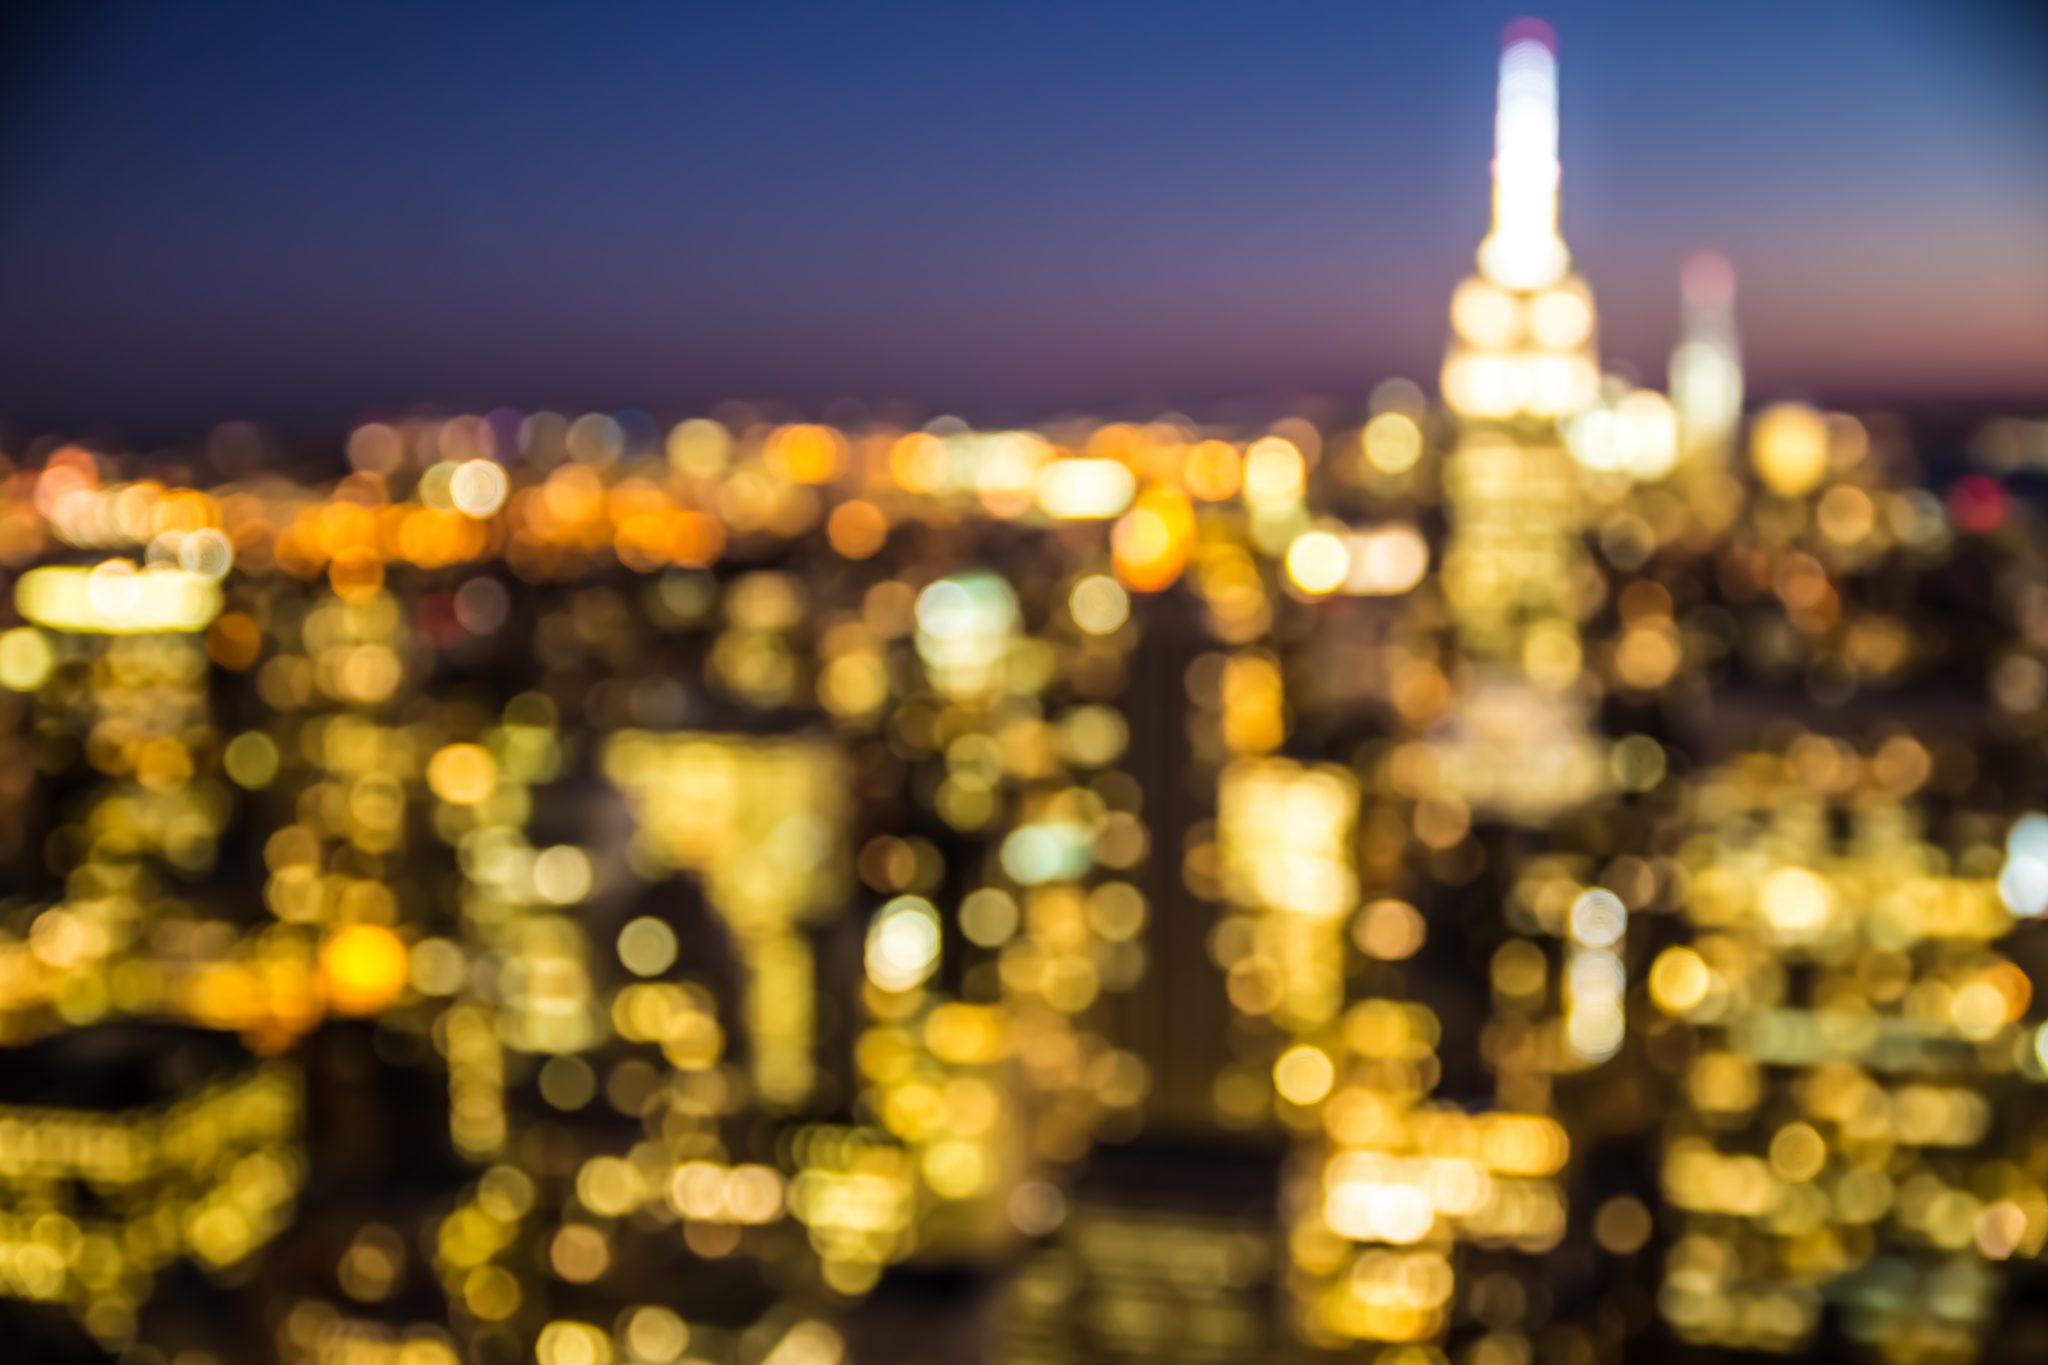 Home / About Artexpo / Defocused Blur Of New York City Buildings Lights At  Night